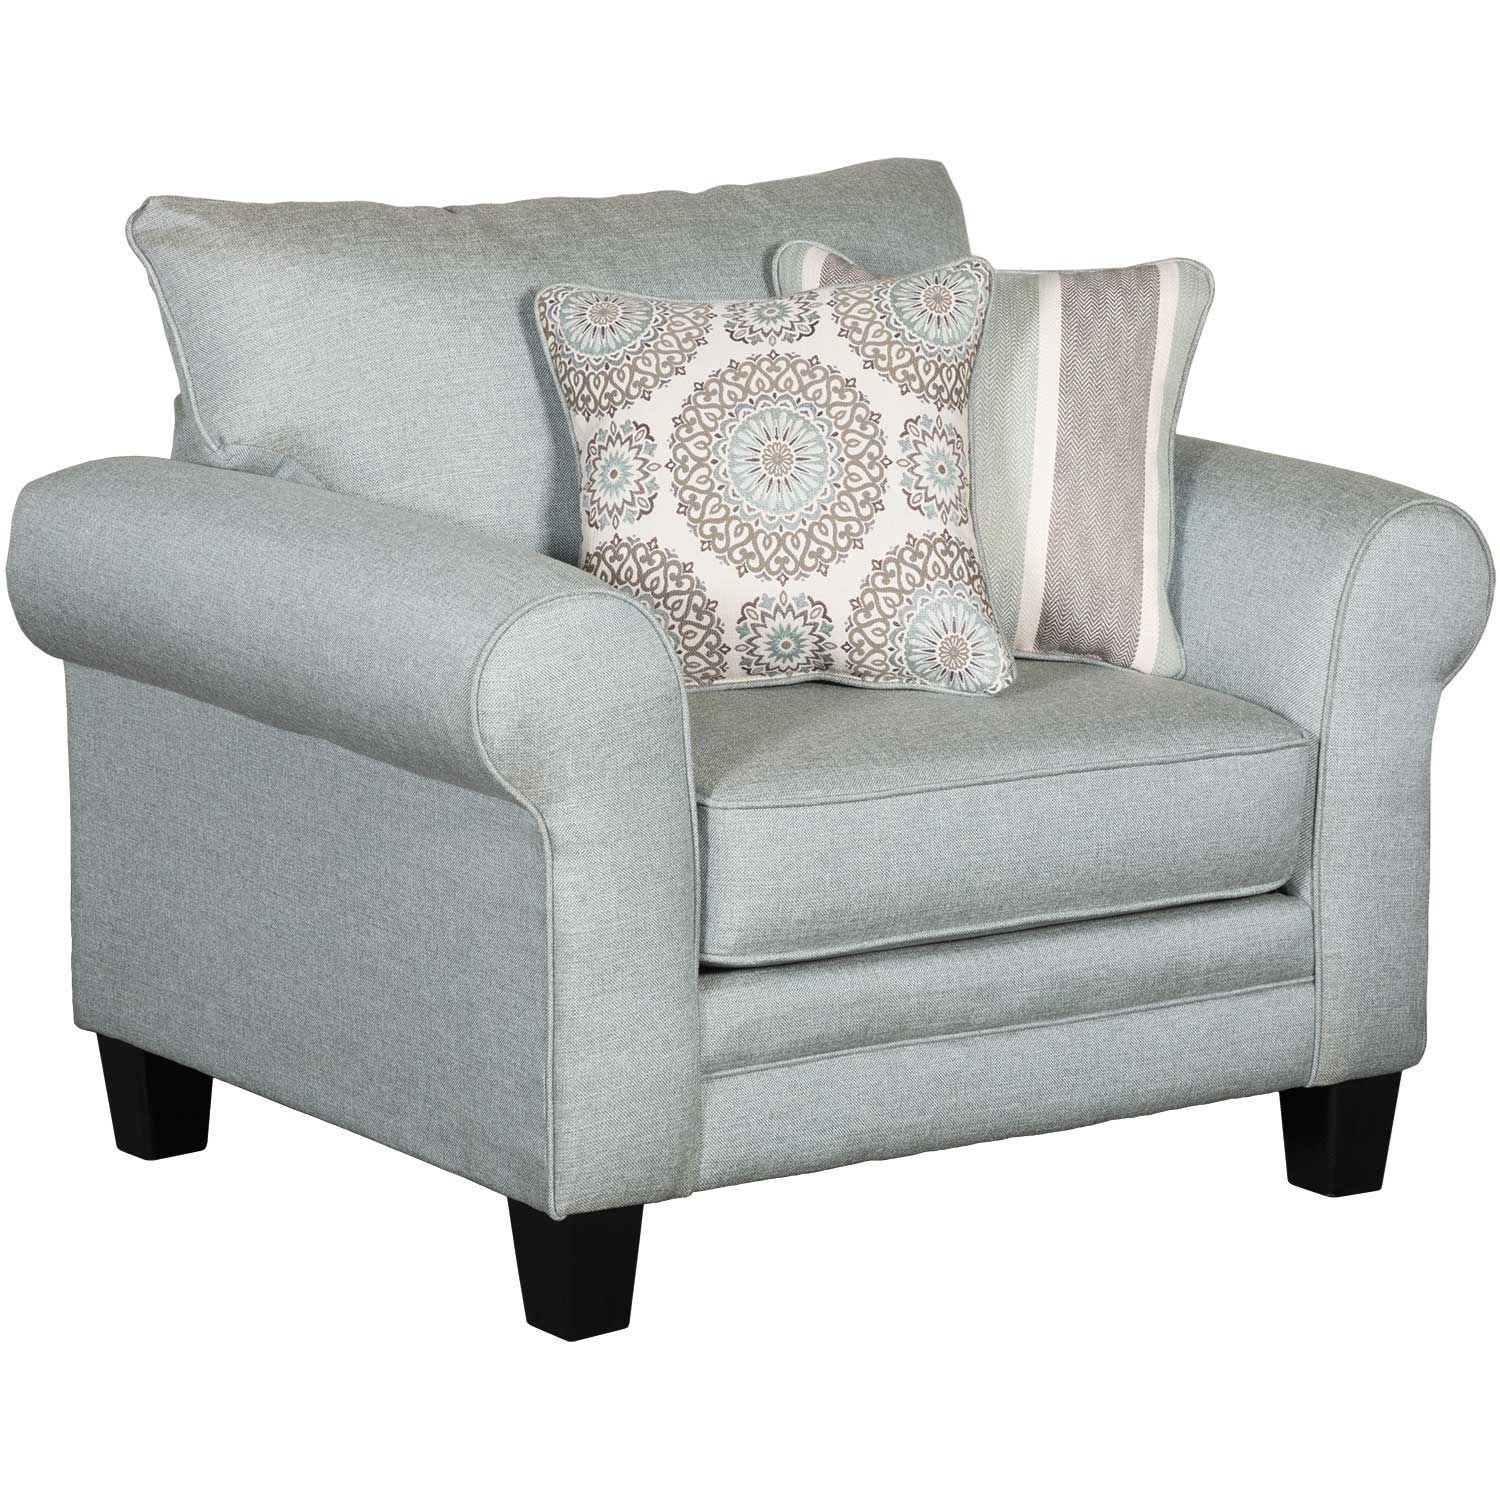 Picture of Brianne Mist Chair